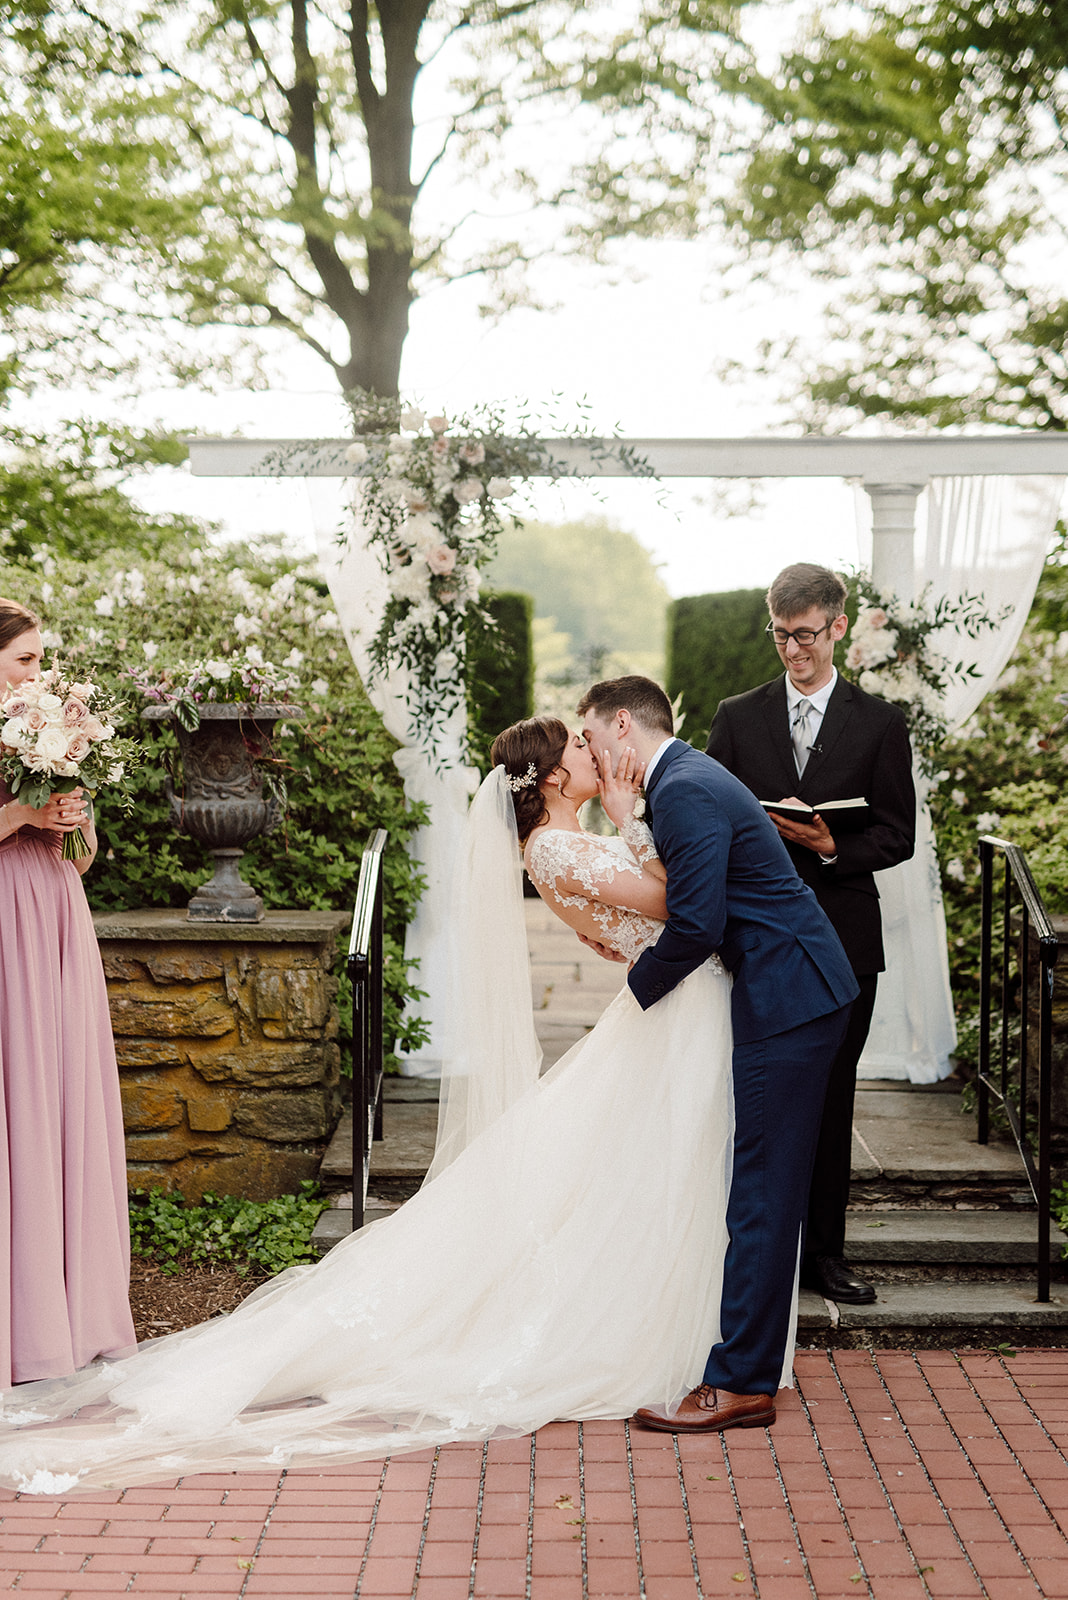 First kiss as husband and wife at Drumore Estate!